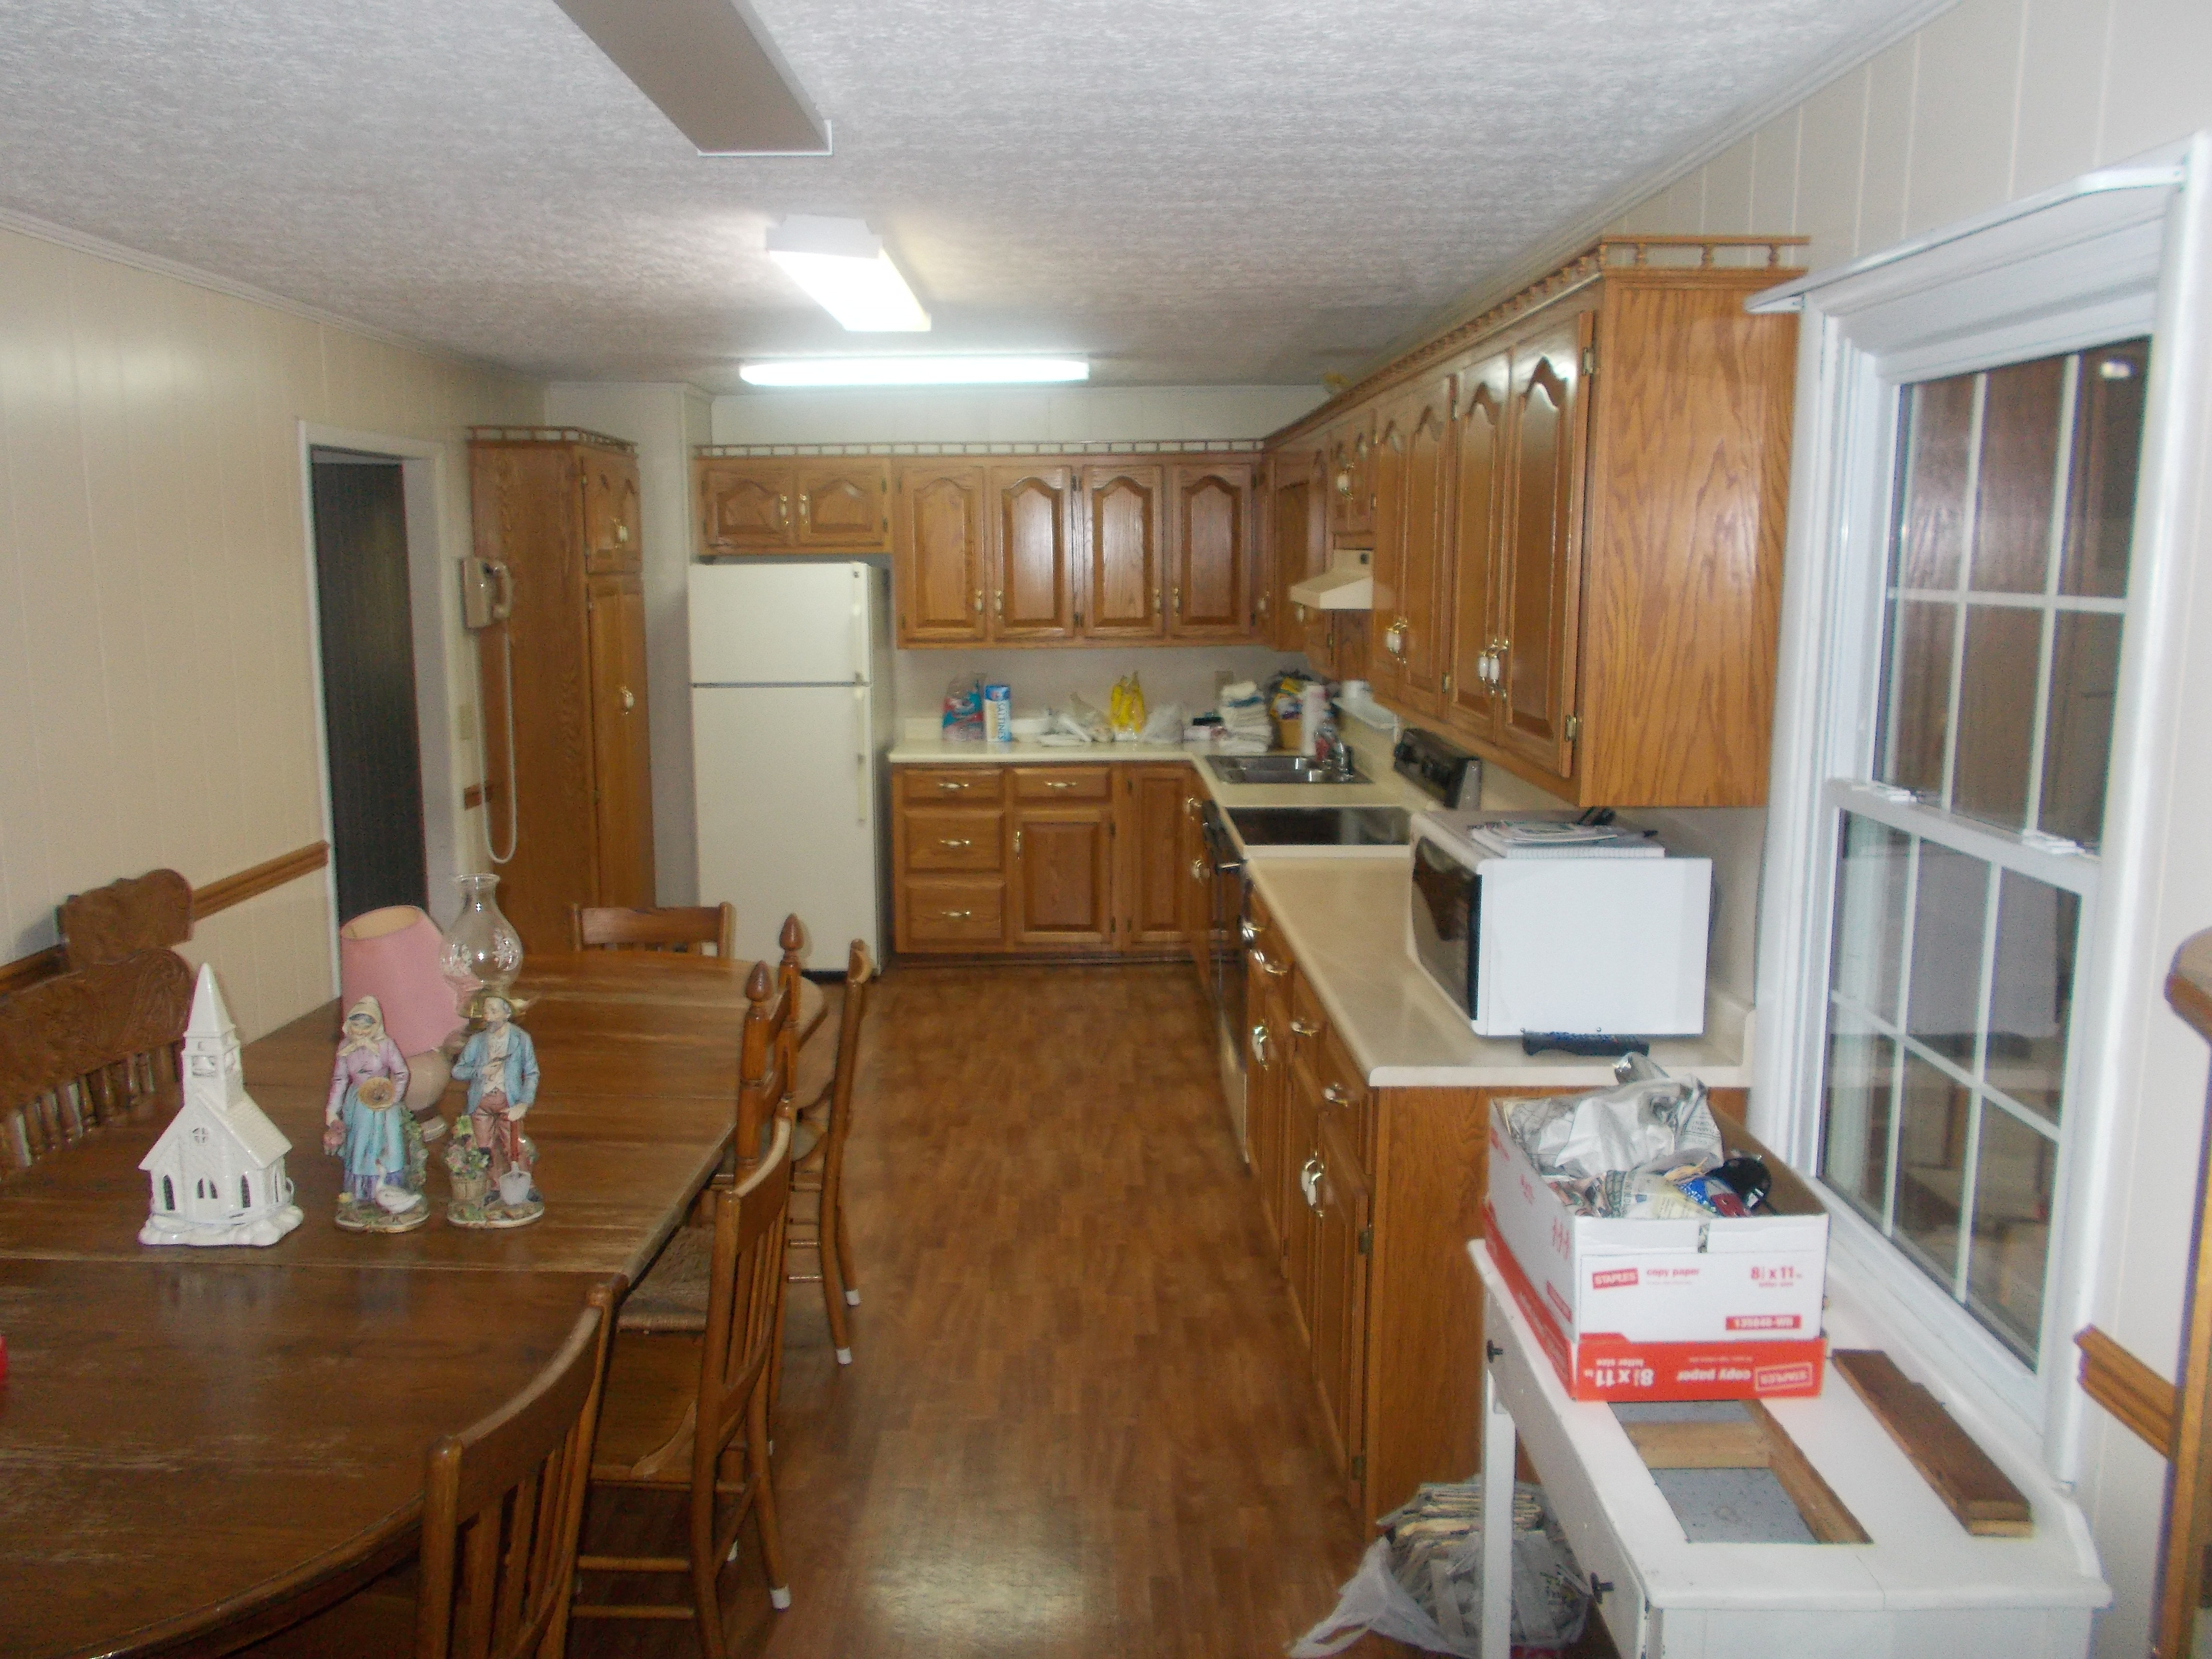 Kentucky Residential Real Estate Kitchen